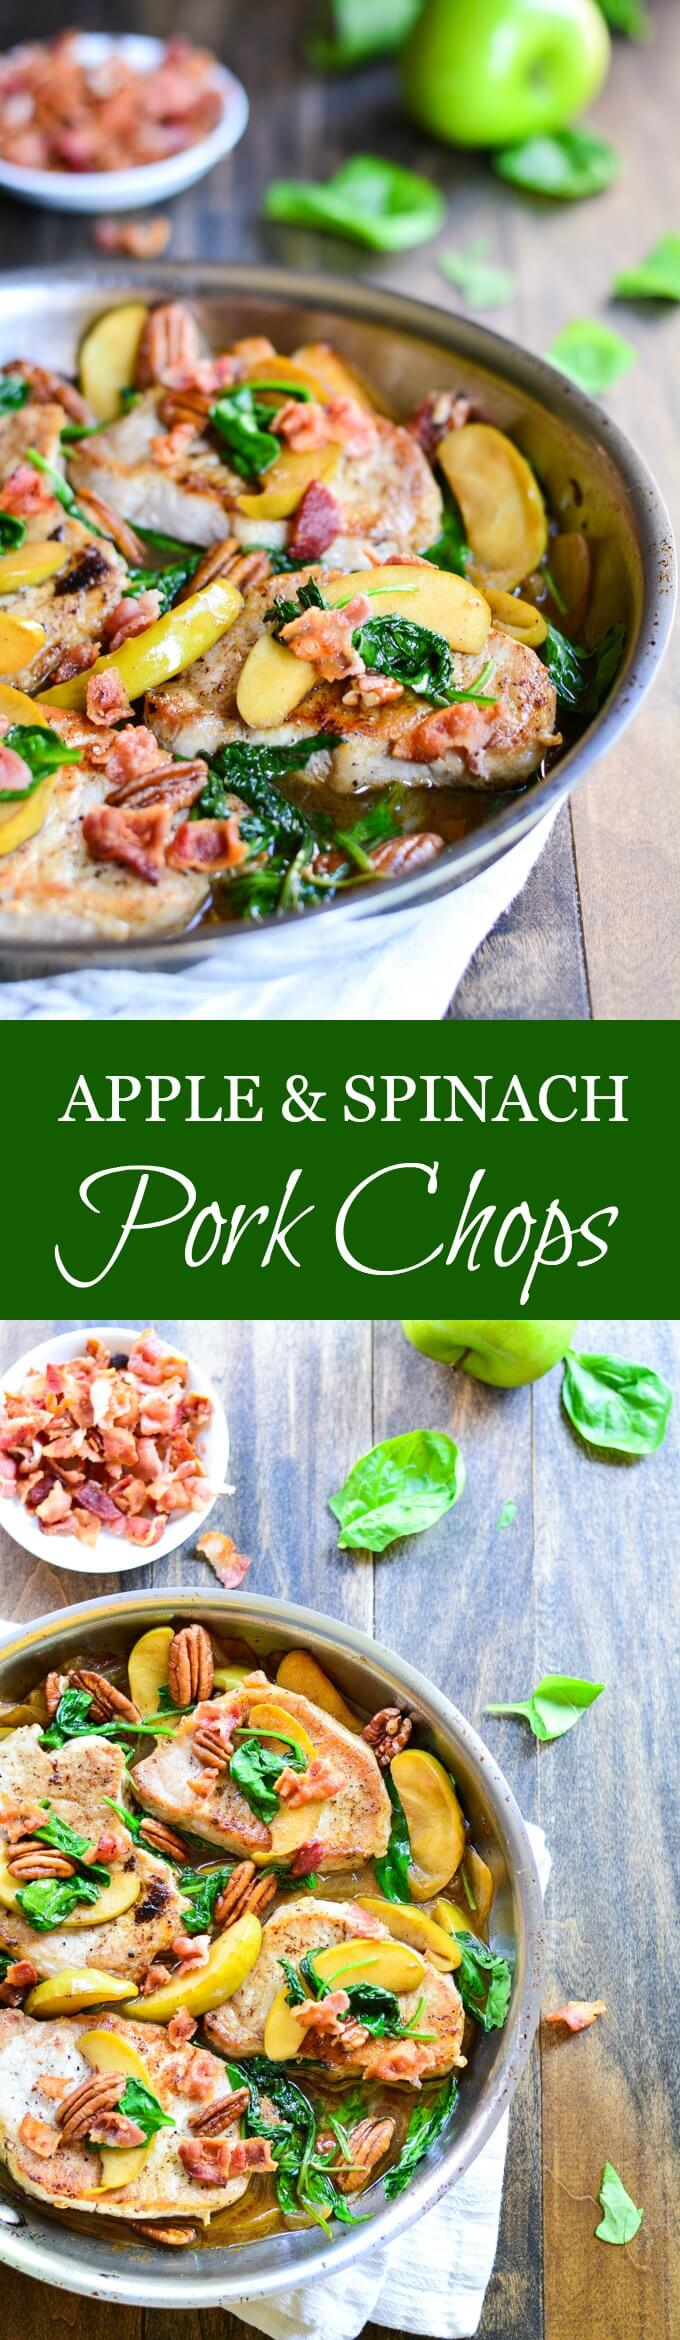 Seared APPLE AND SPINACH PORK CHOPS with wilted spinach, sweet apples, and crispy bacon is made in just 30 minutes in one pan.